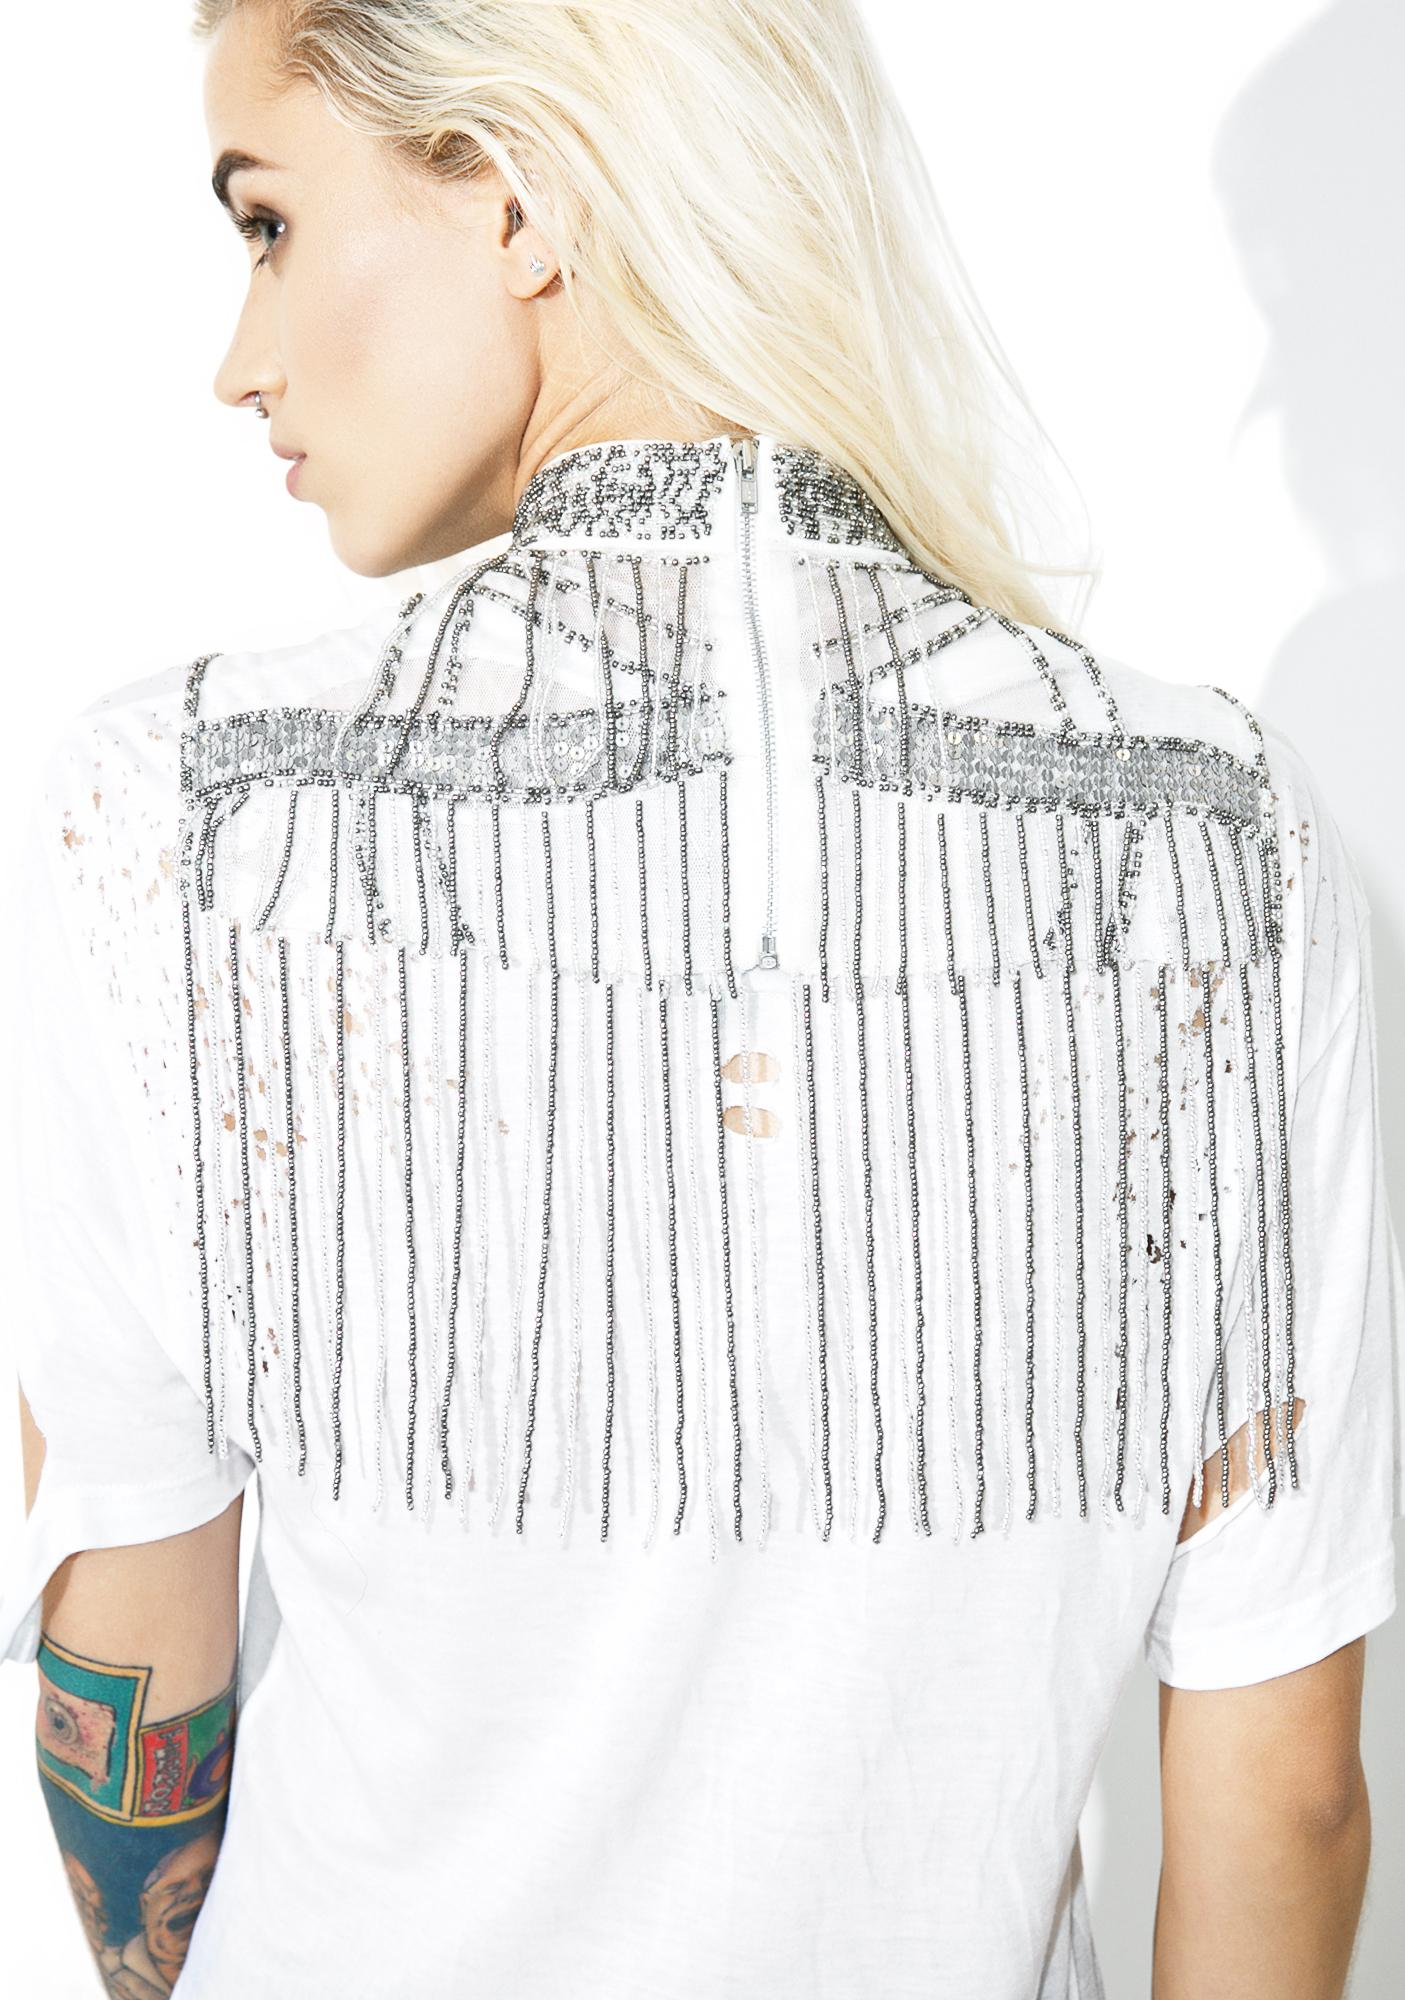 NEW FRIENDS COLONY Beaded Bib Collar